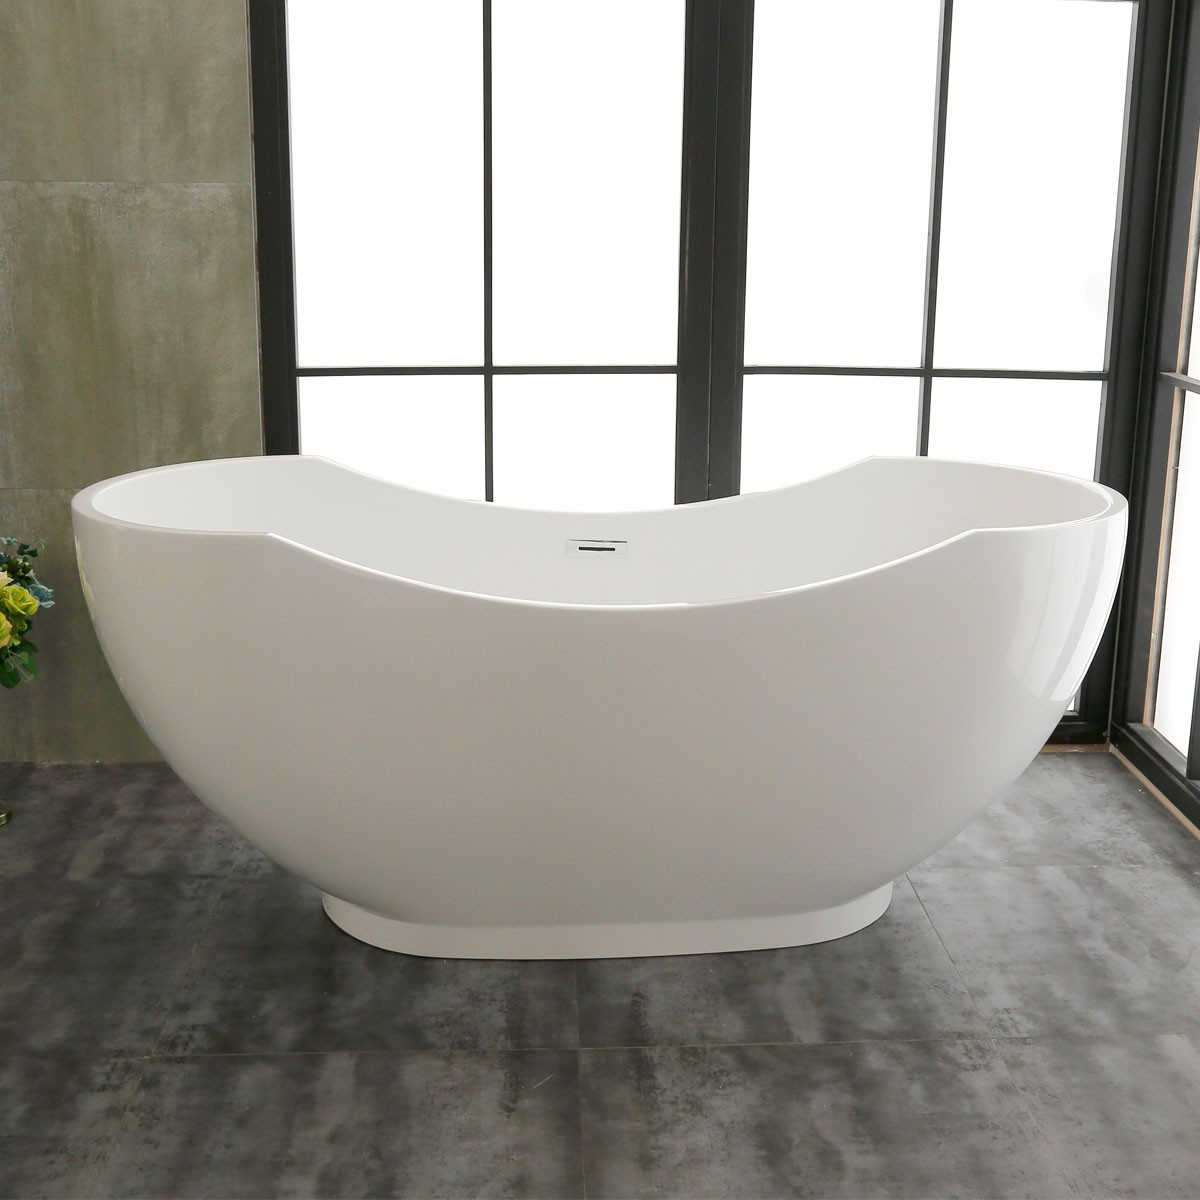 60 In Freestanding Bathtub - Acrylic Pure White (DK-PW-60575)